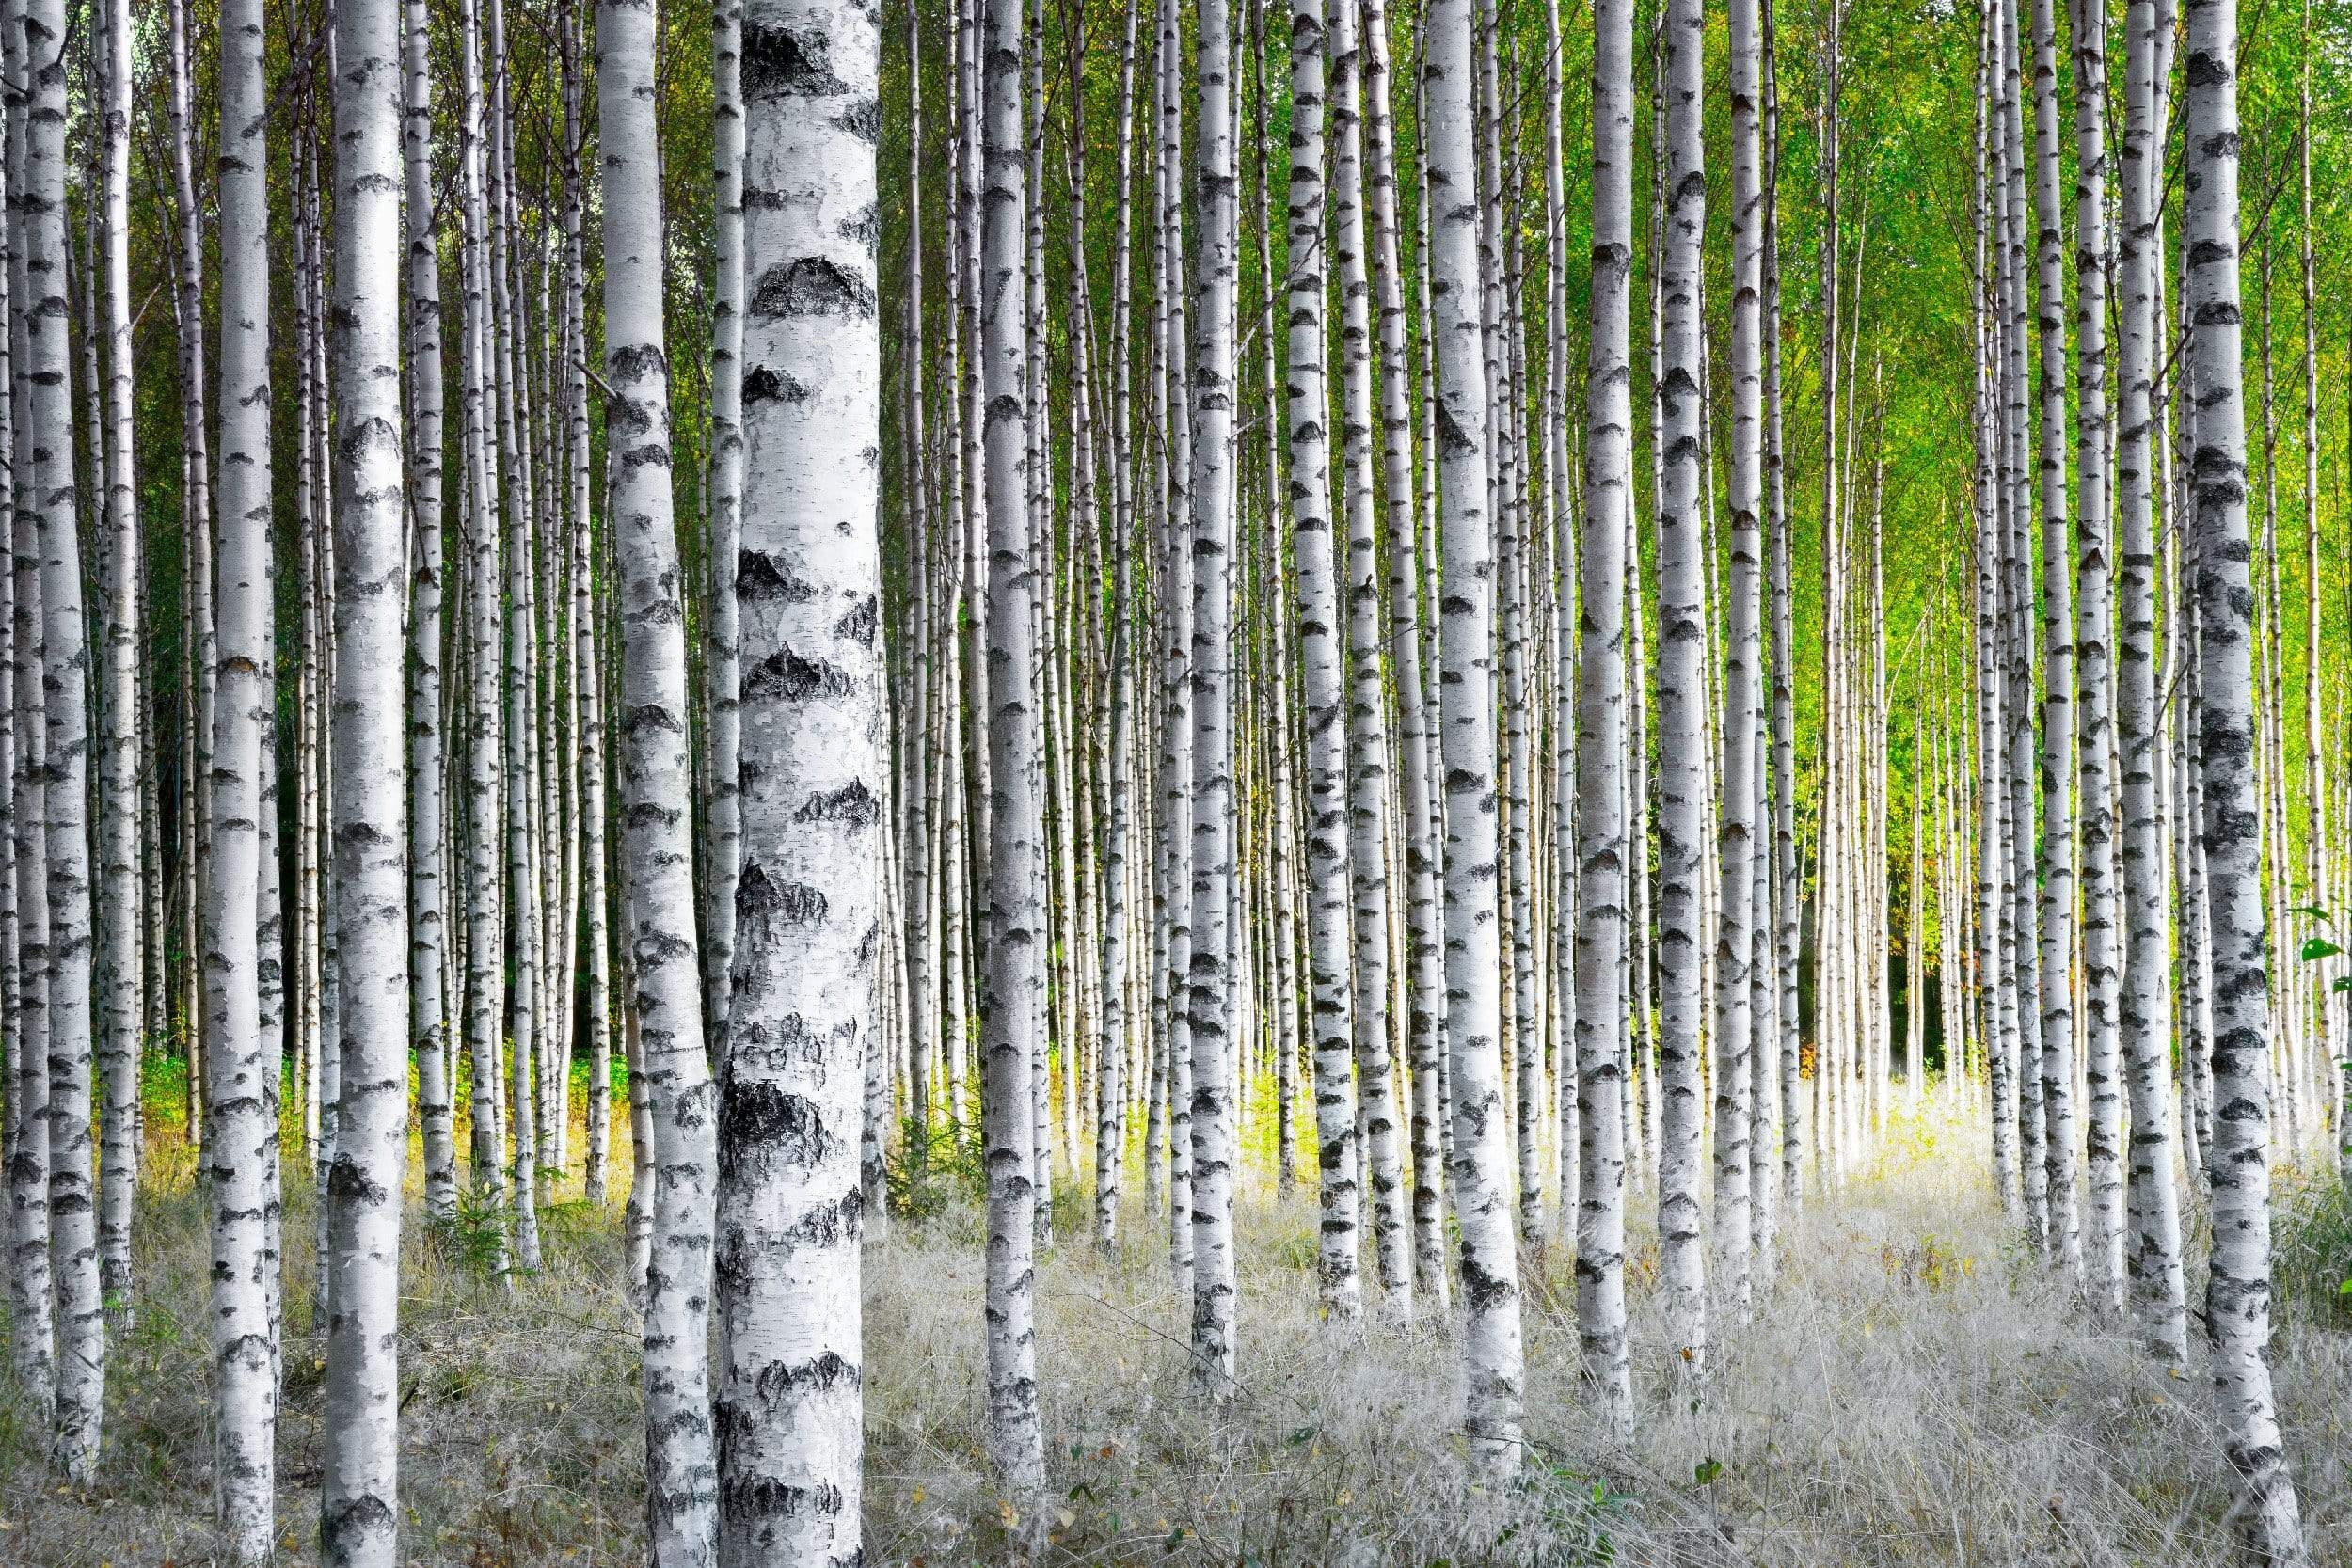 Birch Trees in a row